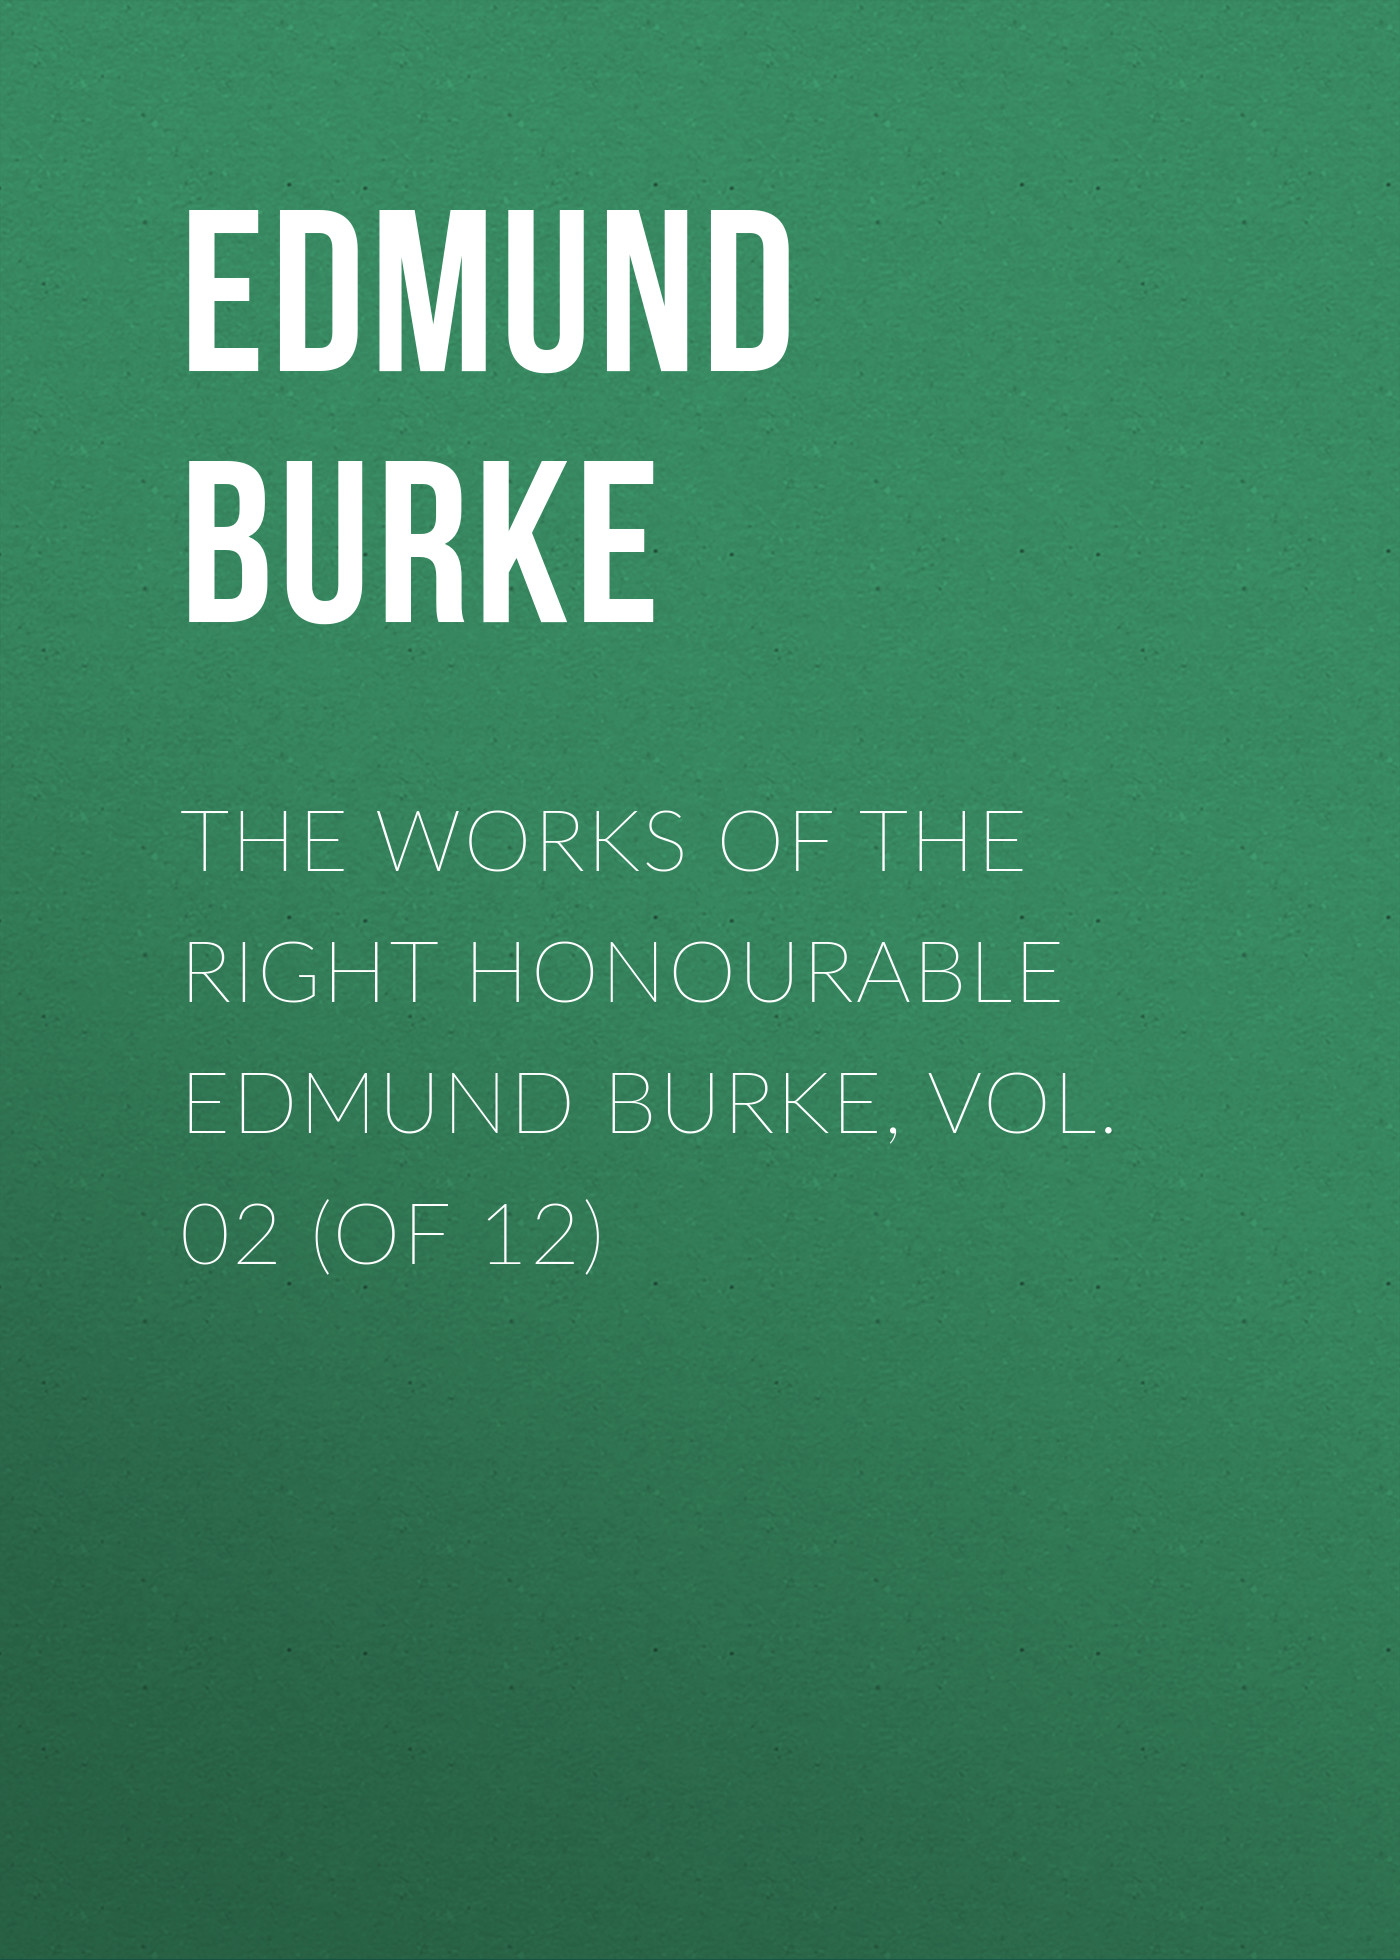 Edmund Burke The Works of the Right Honourable Edmund Burke, Vol. 02 (of 12) edmund burke the works of the right honourable edmund burke vol 09 of 12